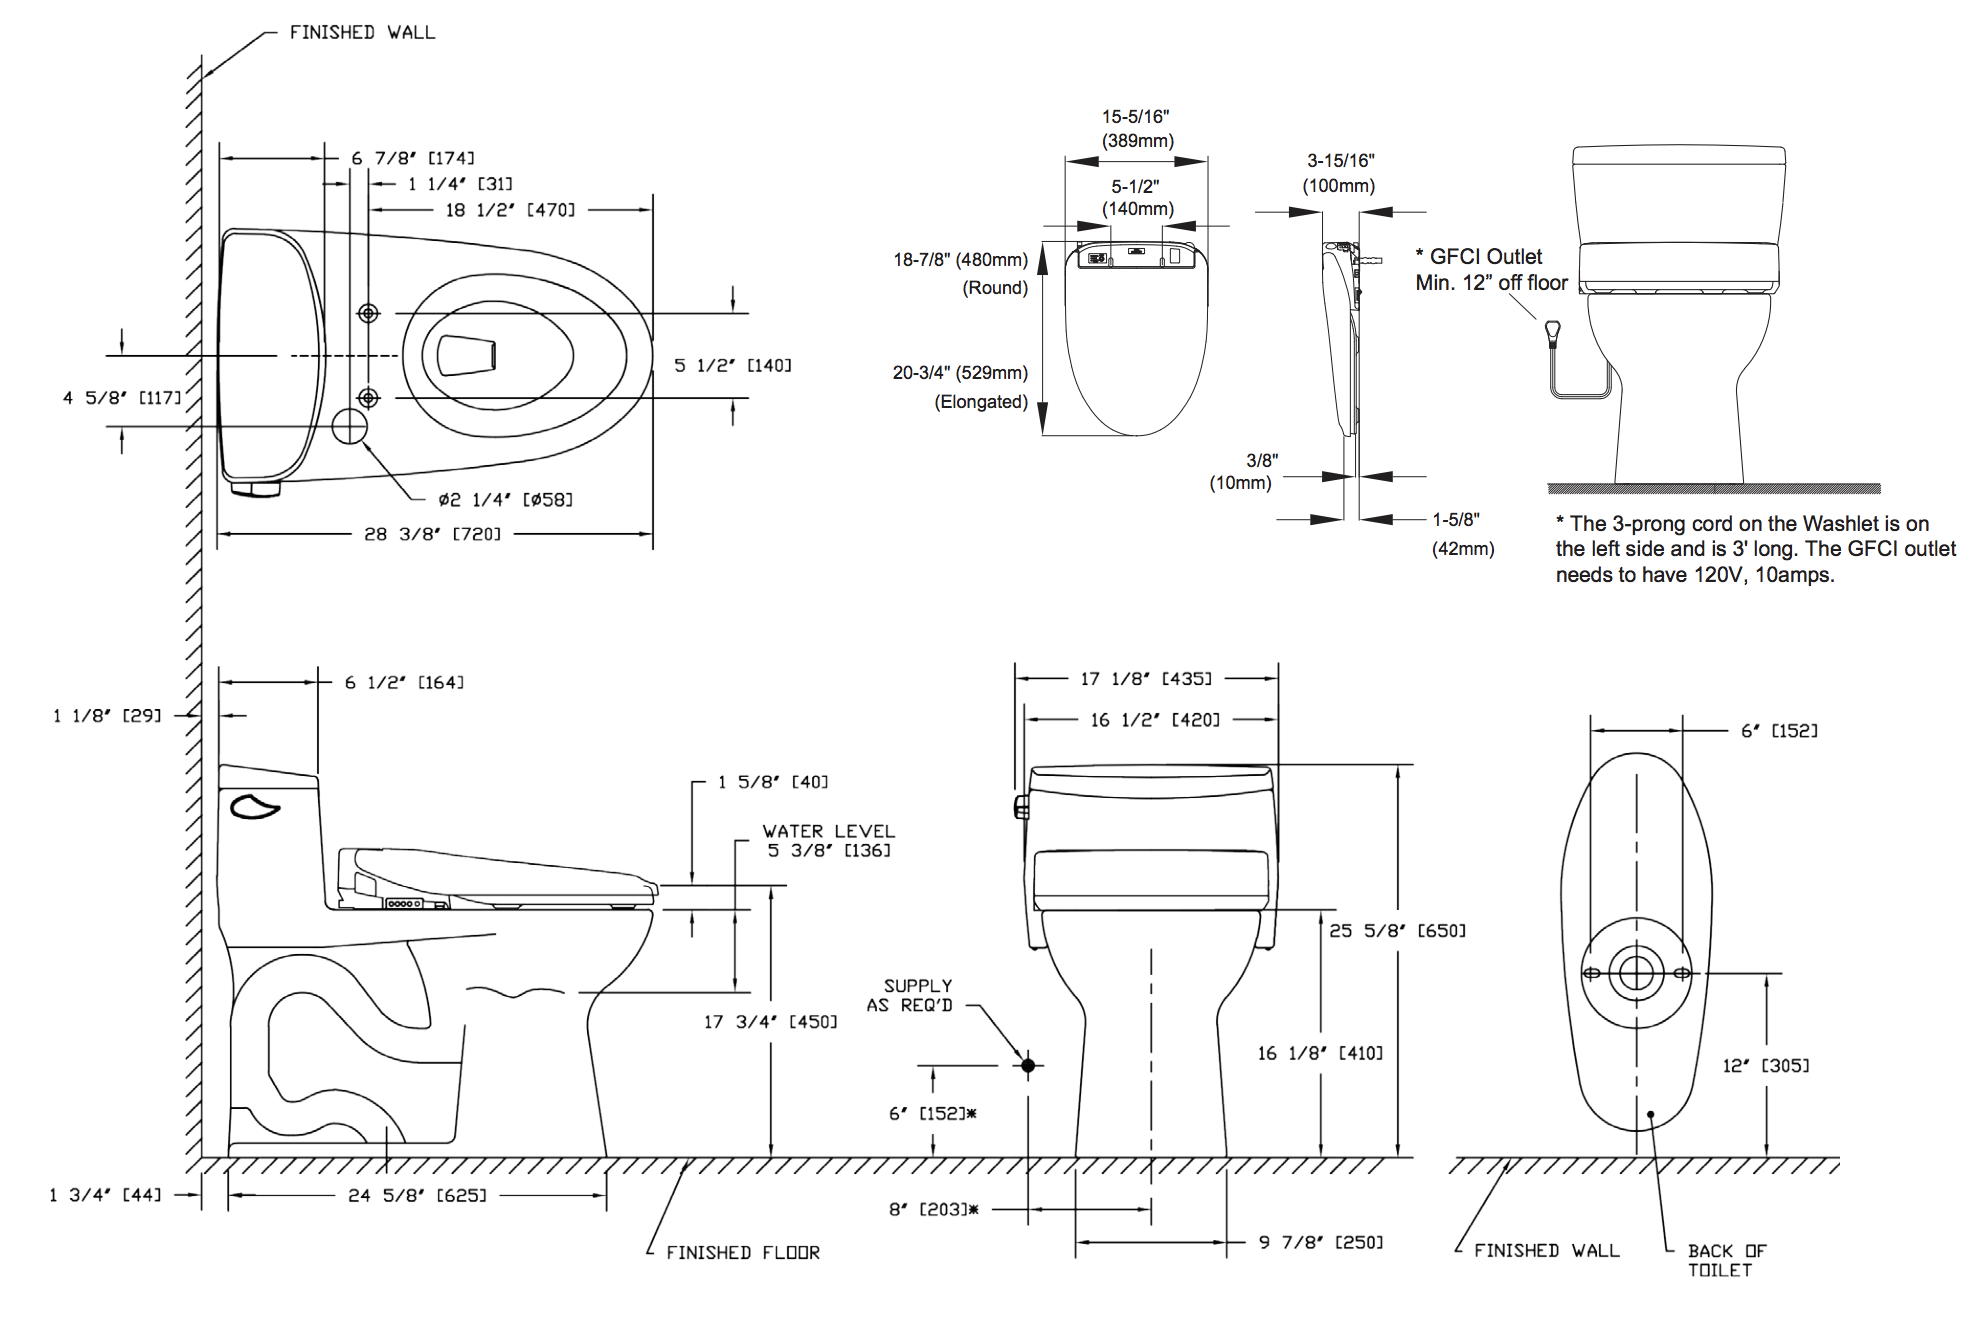 toto-ultramax-ii-1g-washlet-s300e-one-piece-toilet-and-bidet-system-1.0-gpf-diagram.png